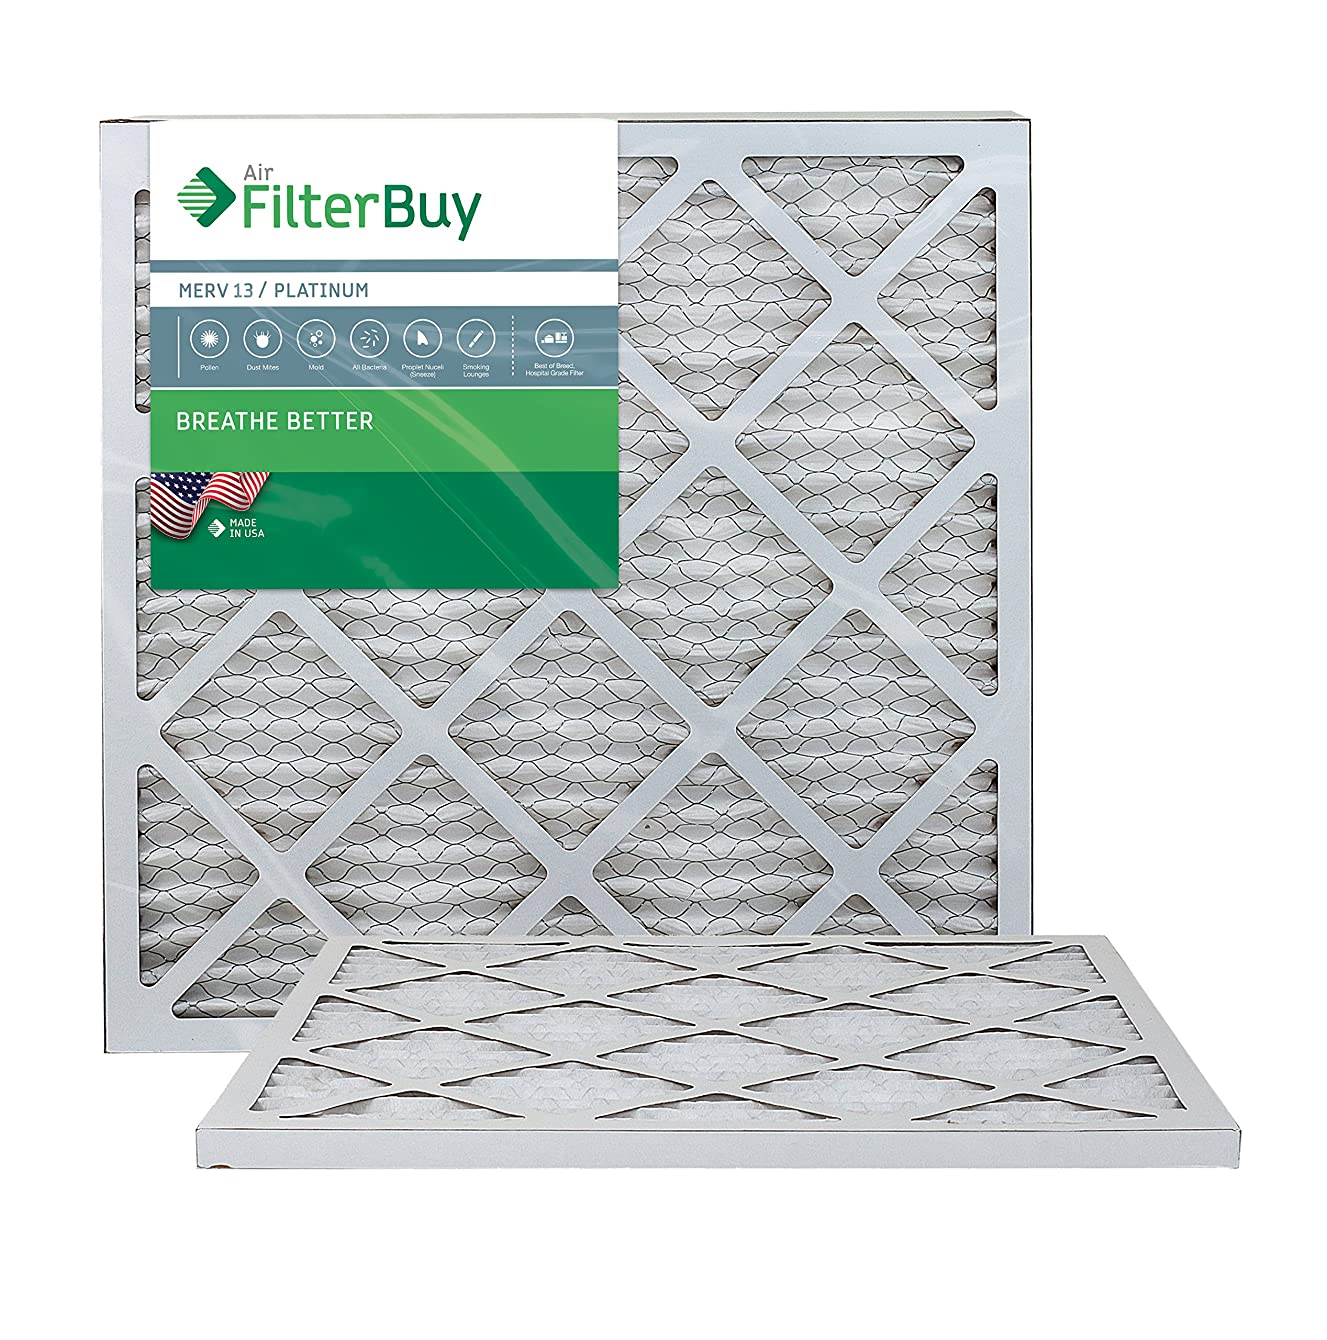 FilterBuy 22x22x1 MERV 13 Pleated AC Furnace Air Filter, (Pack of 2 Filters), 22x22x1 – Platinum